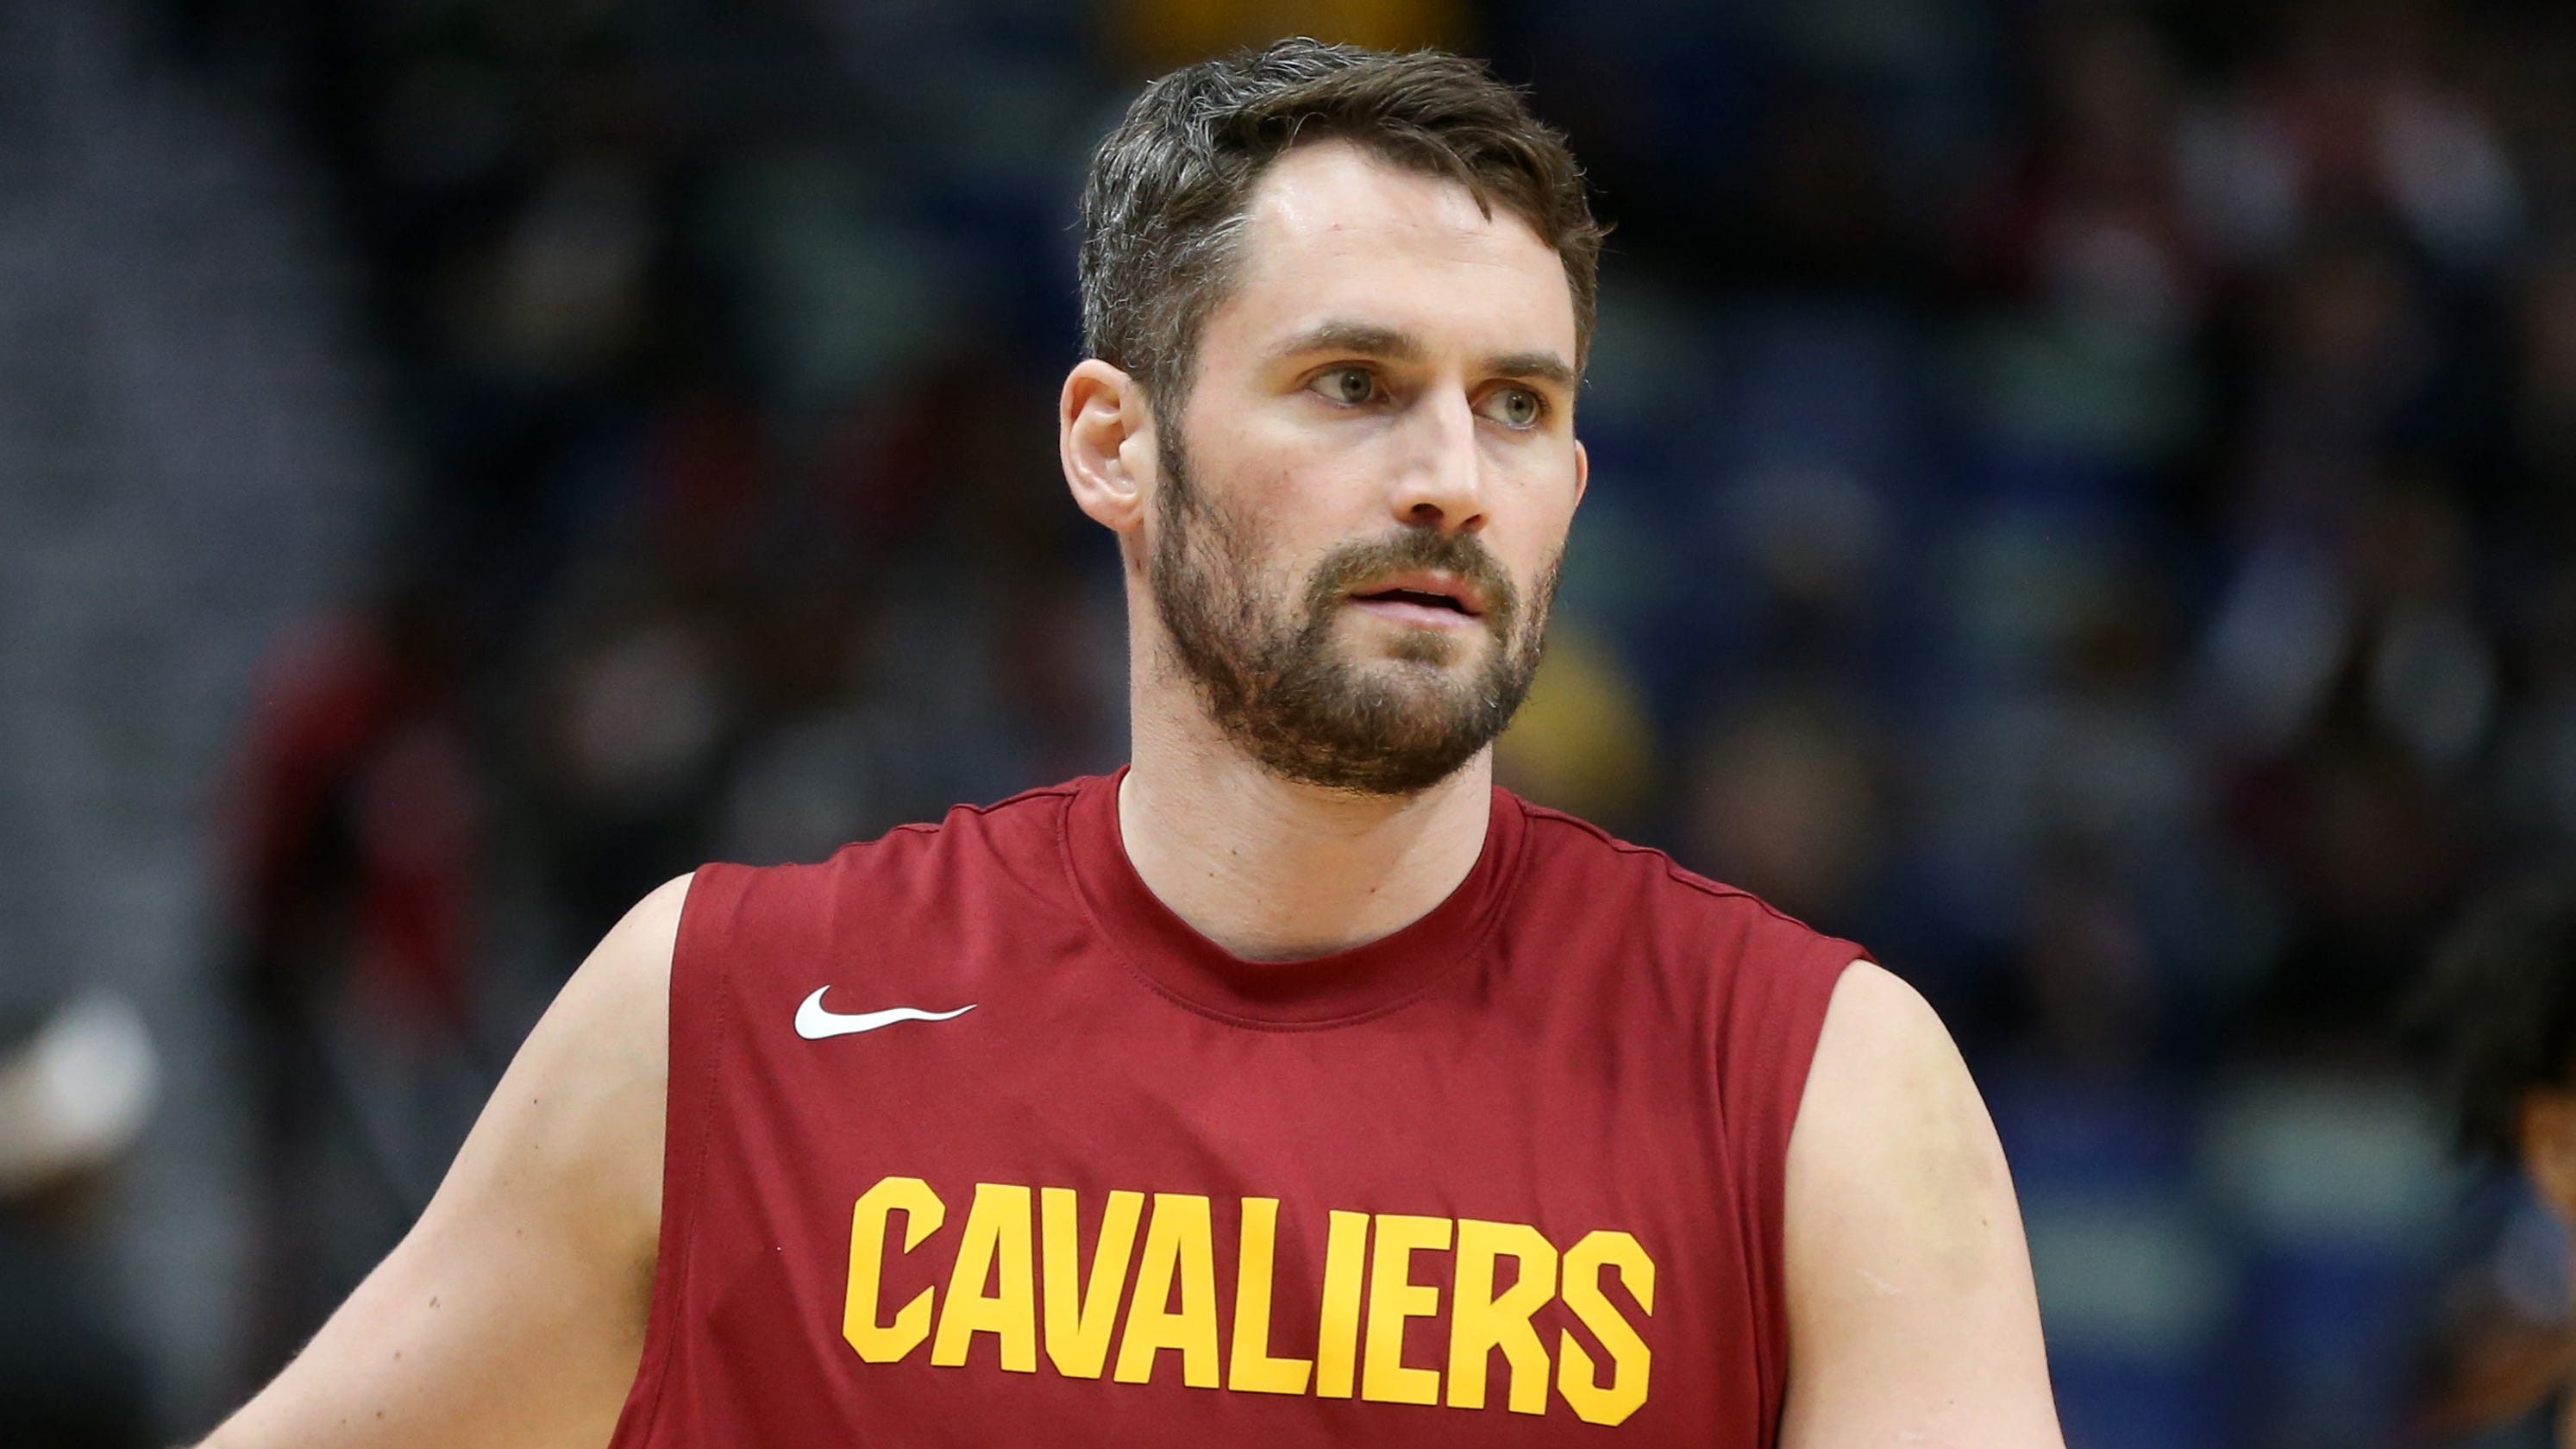 After eight months away, Cavaliers' Kevin Love falls in love with the game again